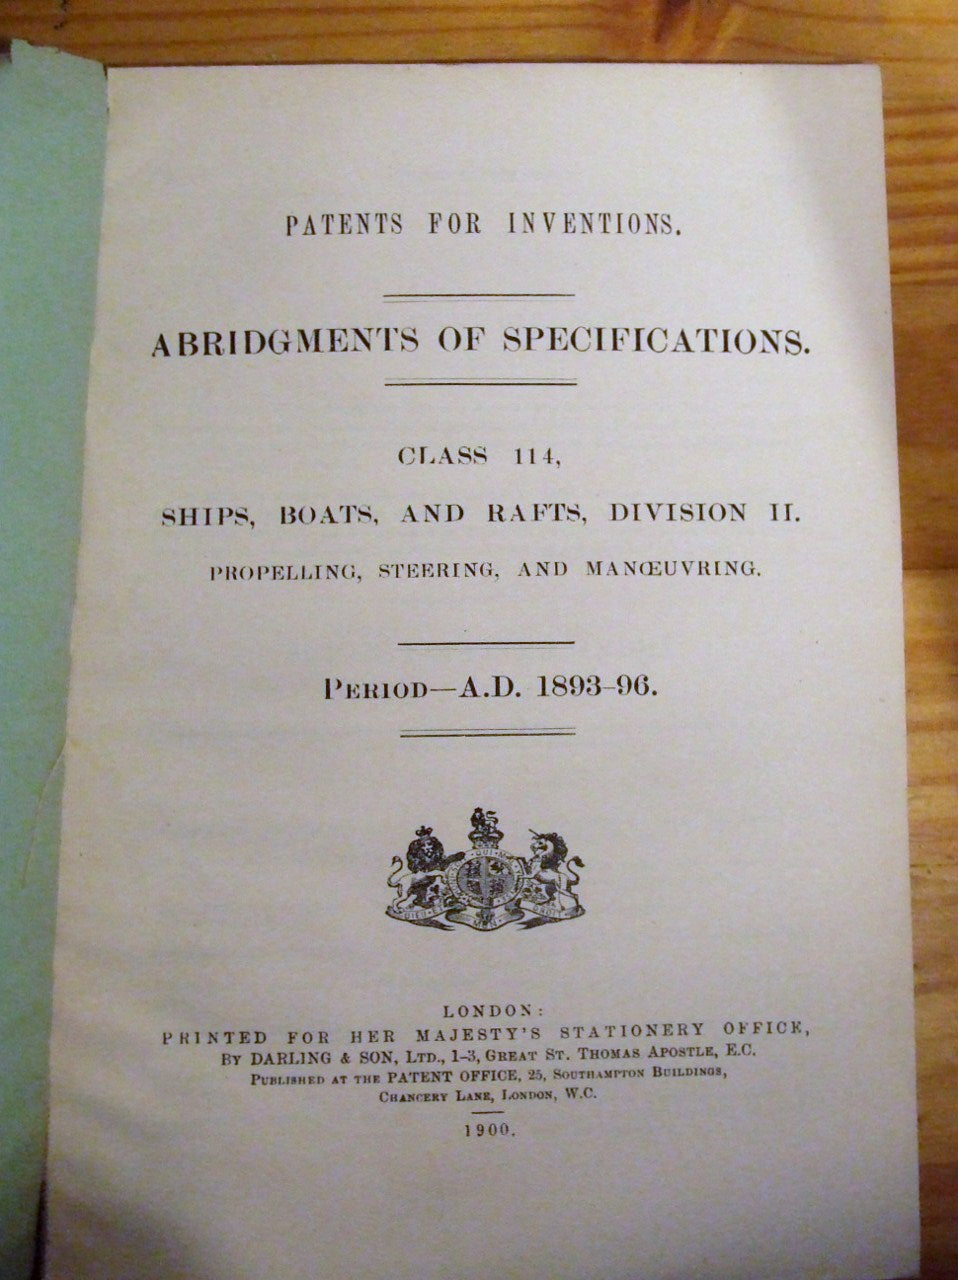 Patents for Inventions, Abridgment of Specifications.  Class 114, Ships, Boats, and Rafts, Division II - Propelling, Steering, and Manoeuvring